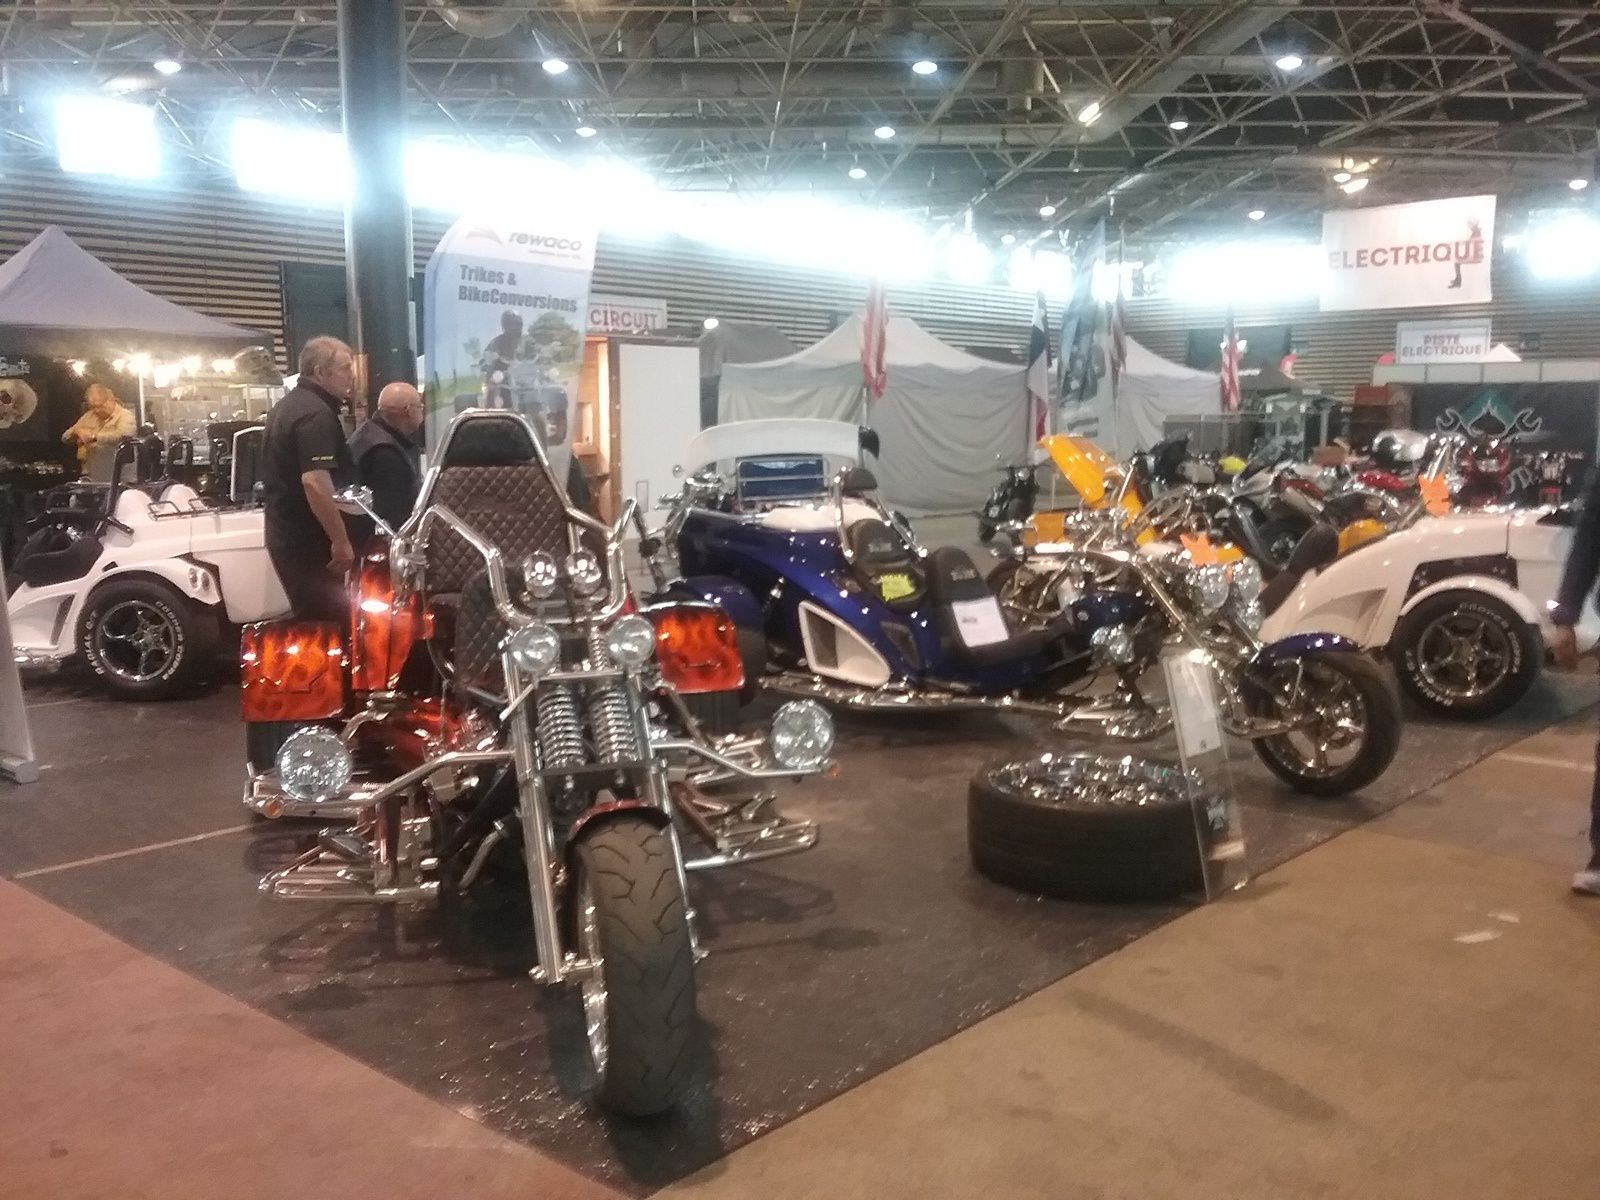 Salon de la moto a lyon l 39 allier trike 03 for Salon de la moto lyon 2017